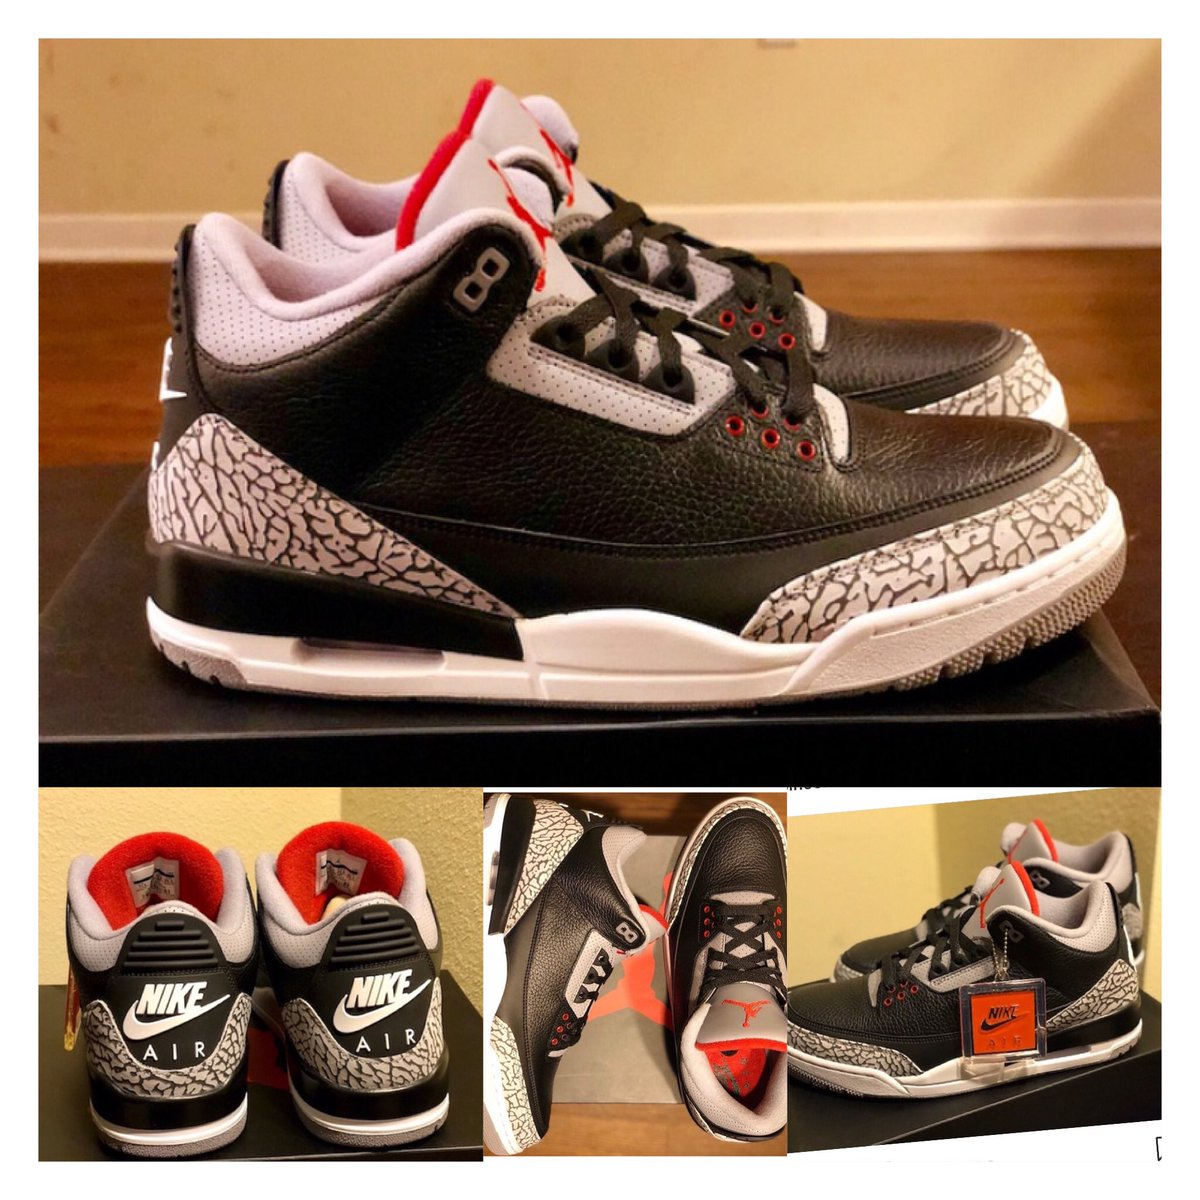 3a430a3554cfc6 get 2 17 18 celebrating air jordan 3s 30th anniversary jordan brand will  retro the og